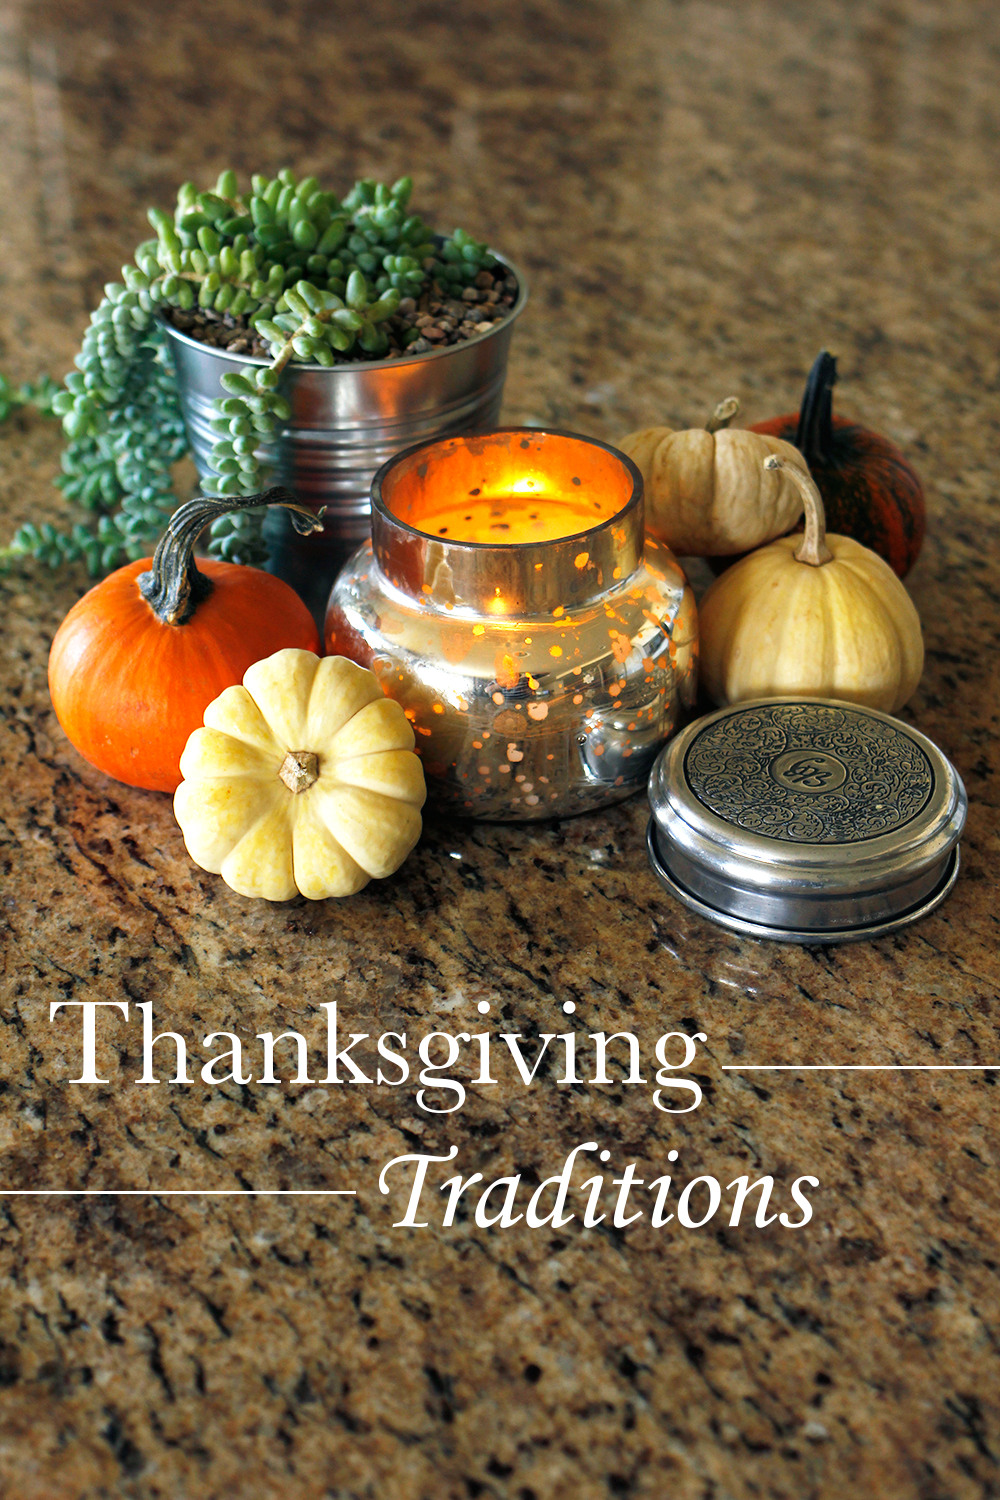 Thanksgiving Family Traditions (New and Old)